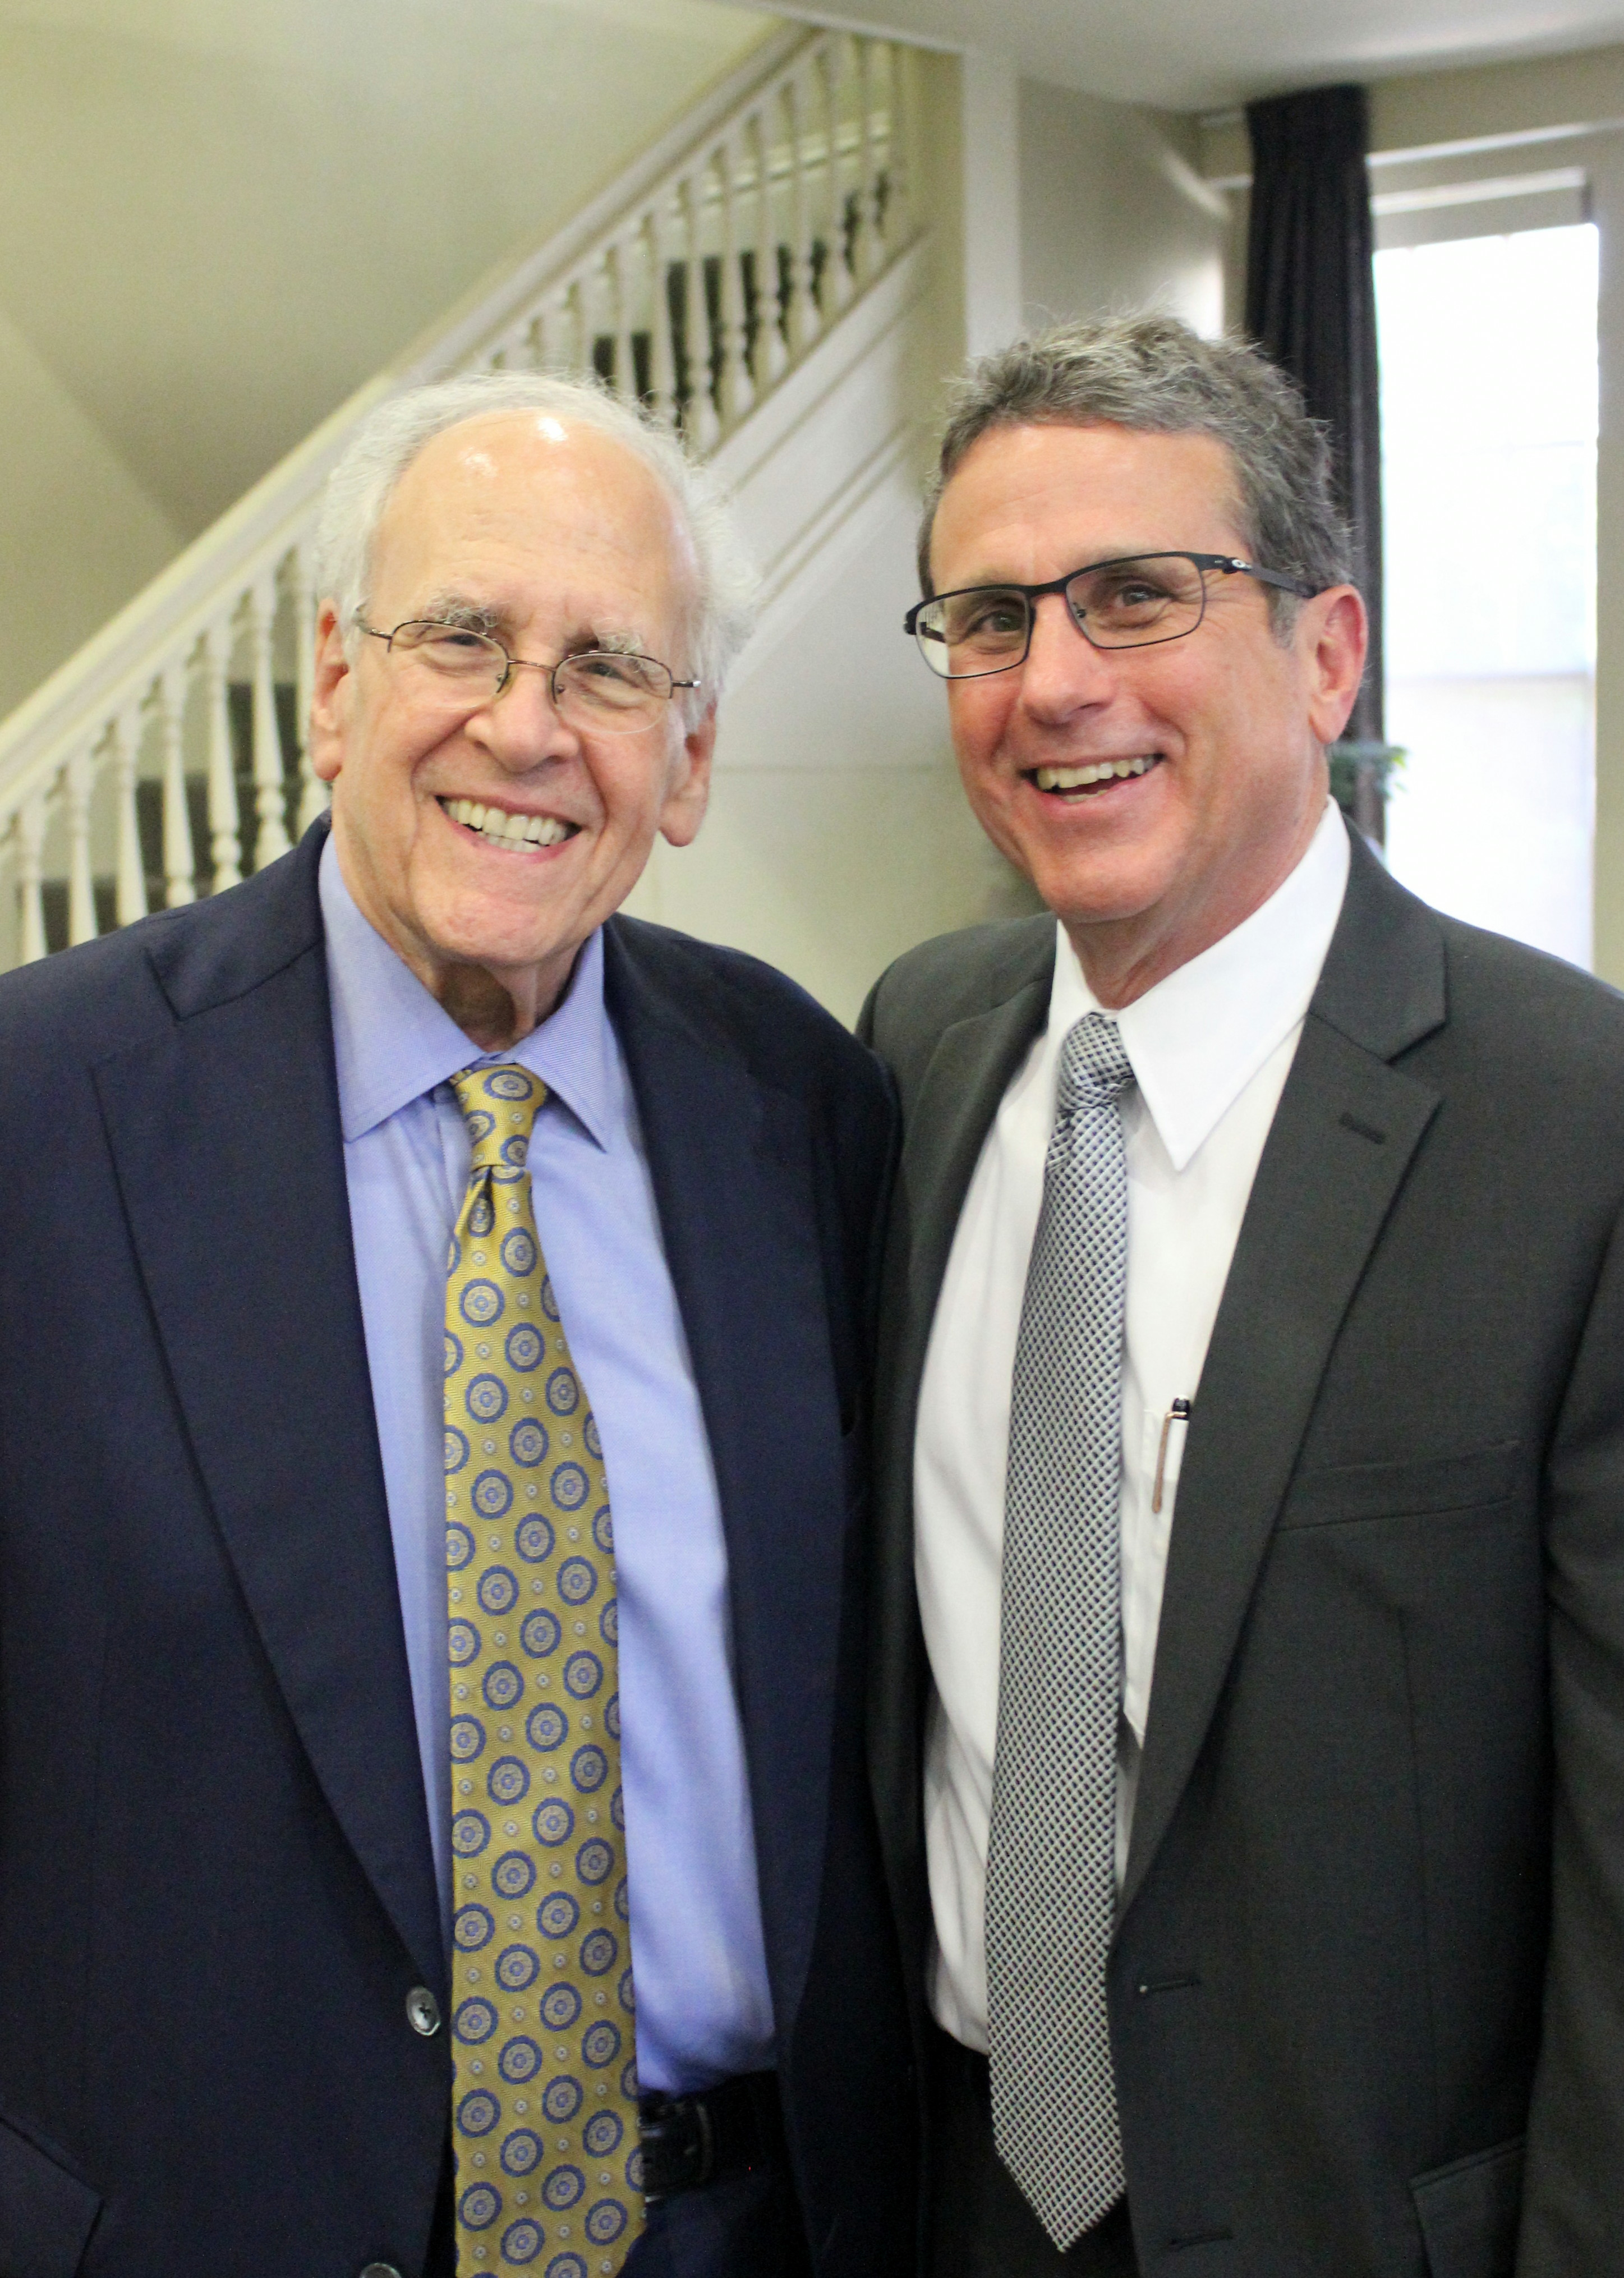 Drs. Loren Roth and David Lewis at the 18th Annual Department of Psychiatry Research Day